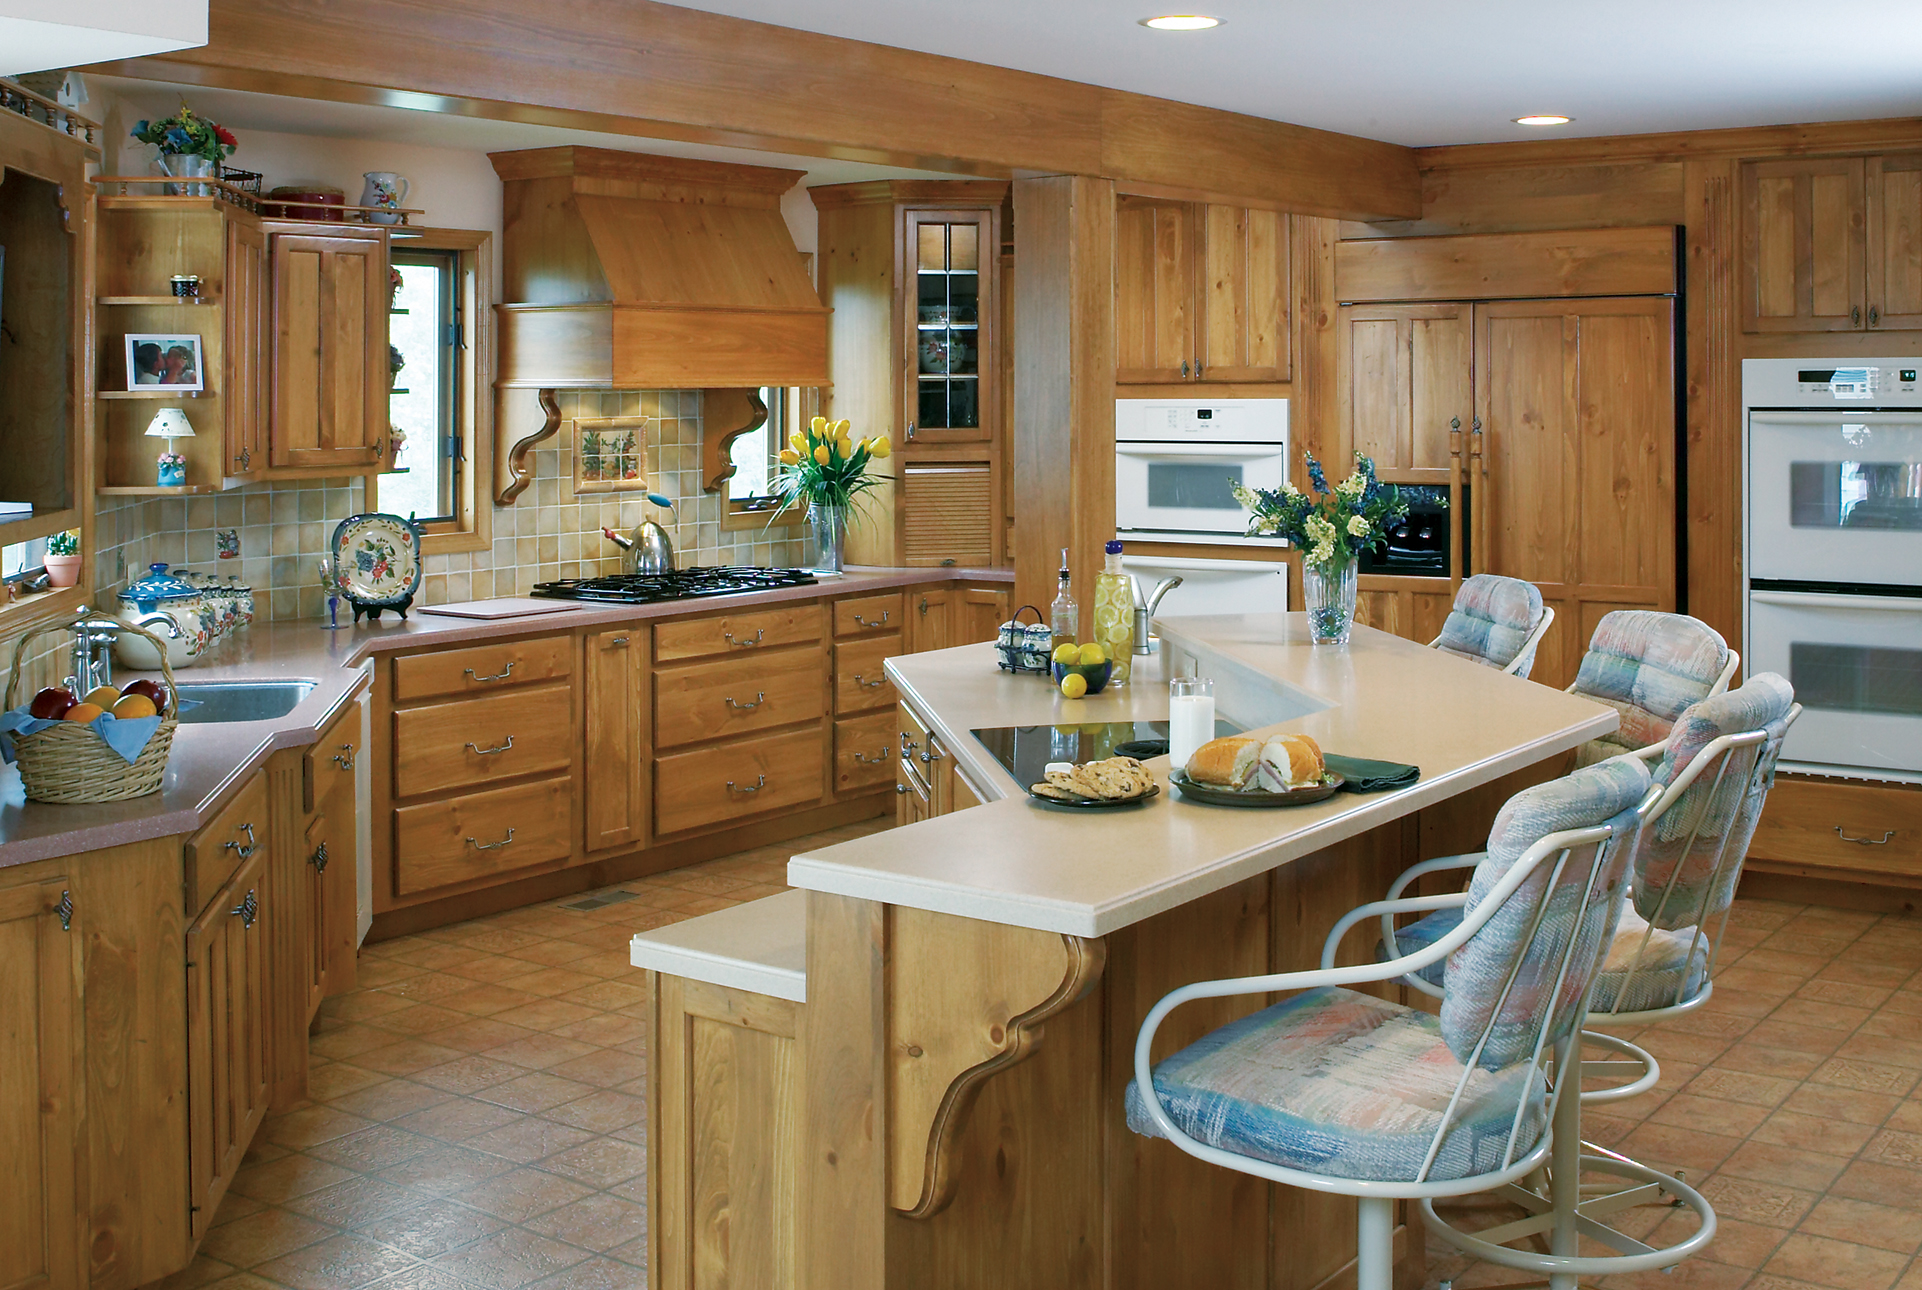 10 pos to office kitchen table